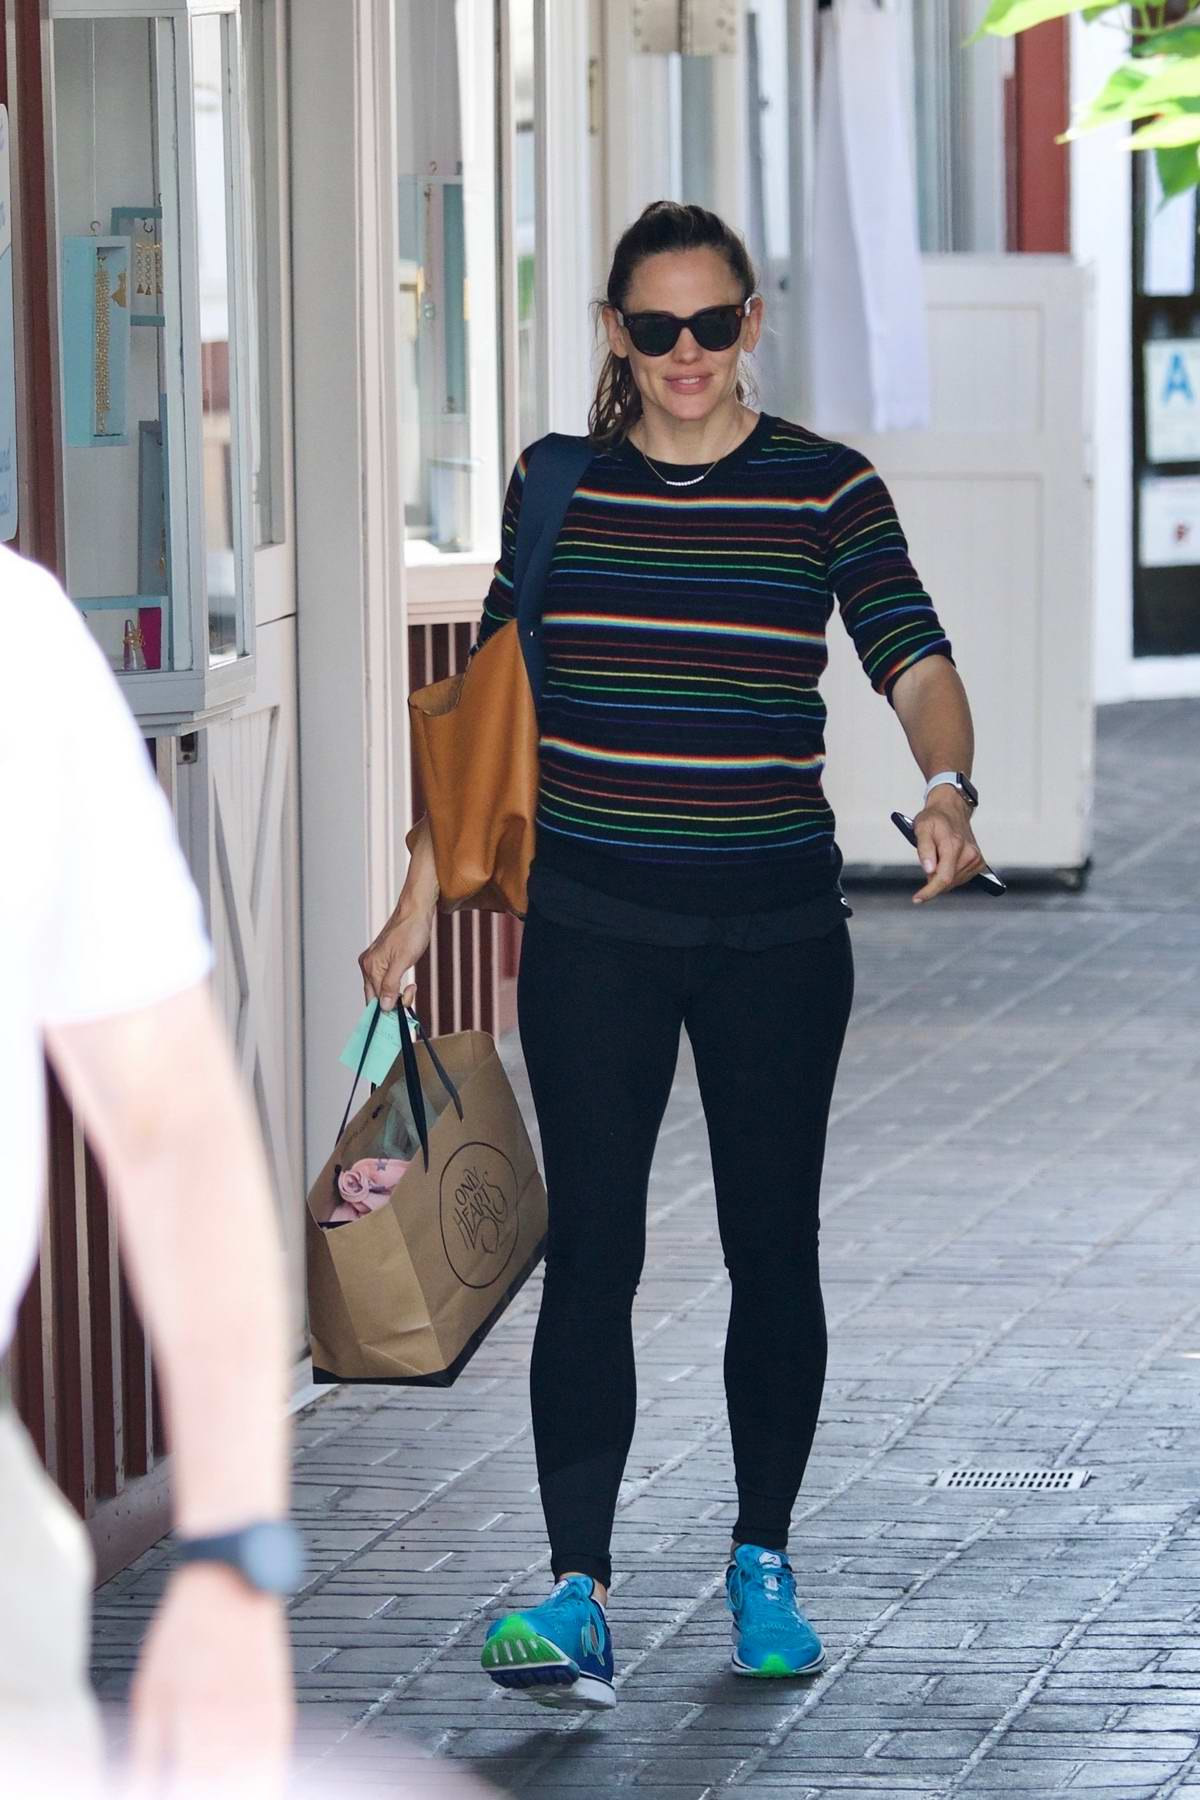 Jennifer Garner dons a colorful striped sweater and black leggings while out for some shopping at Brentwood Country Mart in Los Angeles